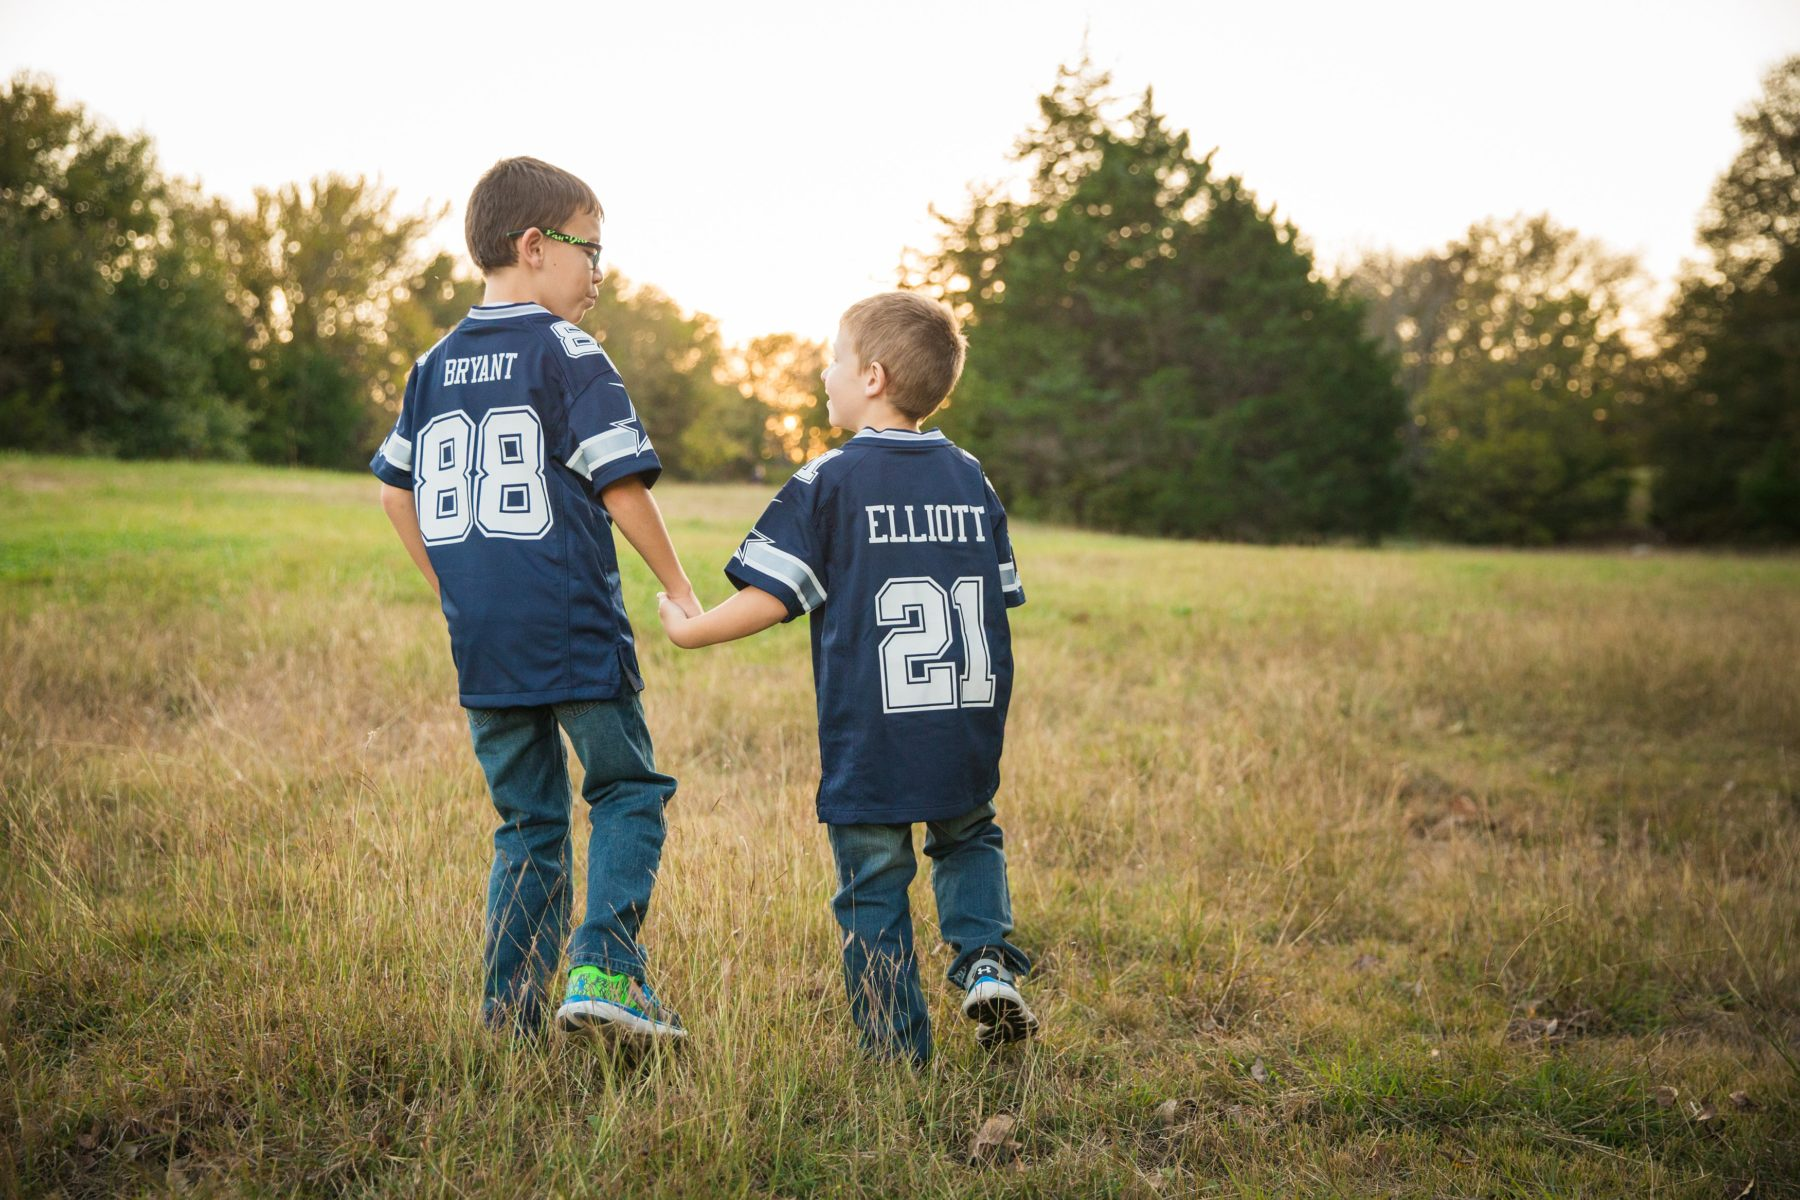 little boys in Dallas Cowboy's jerseys {Family Photographer| Prosper, TX}